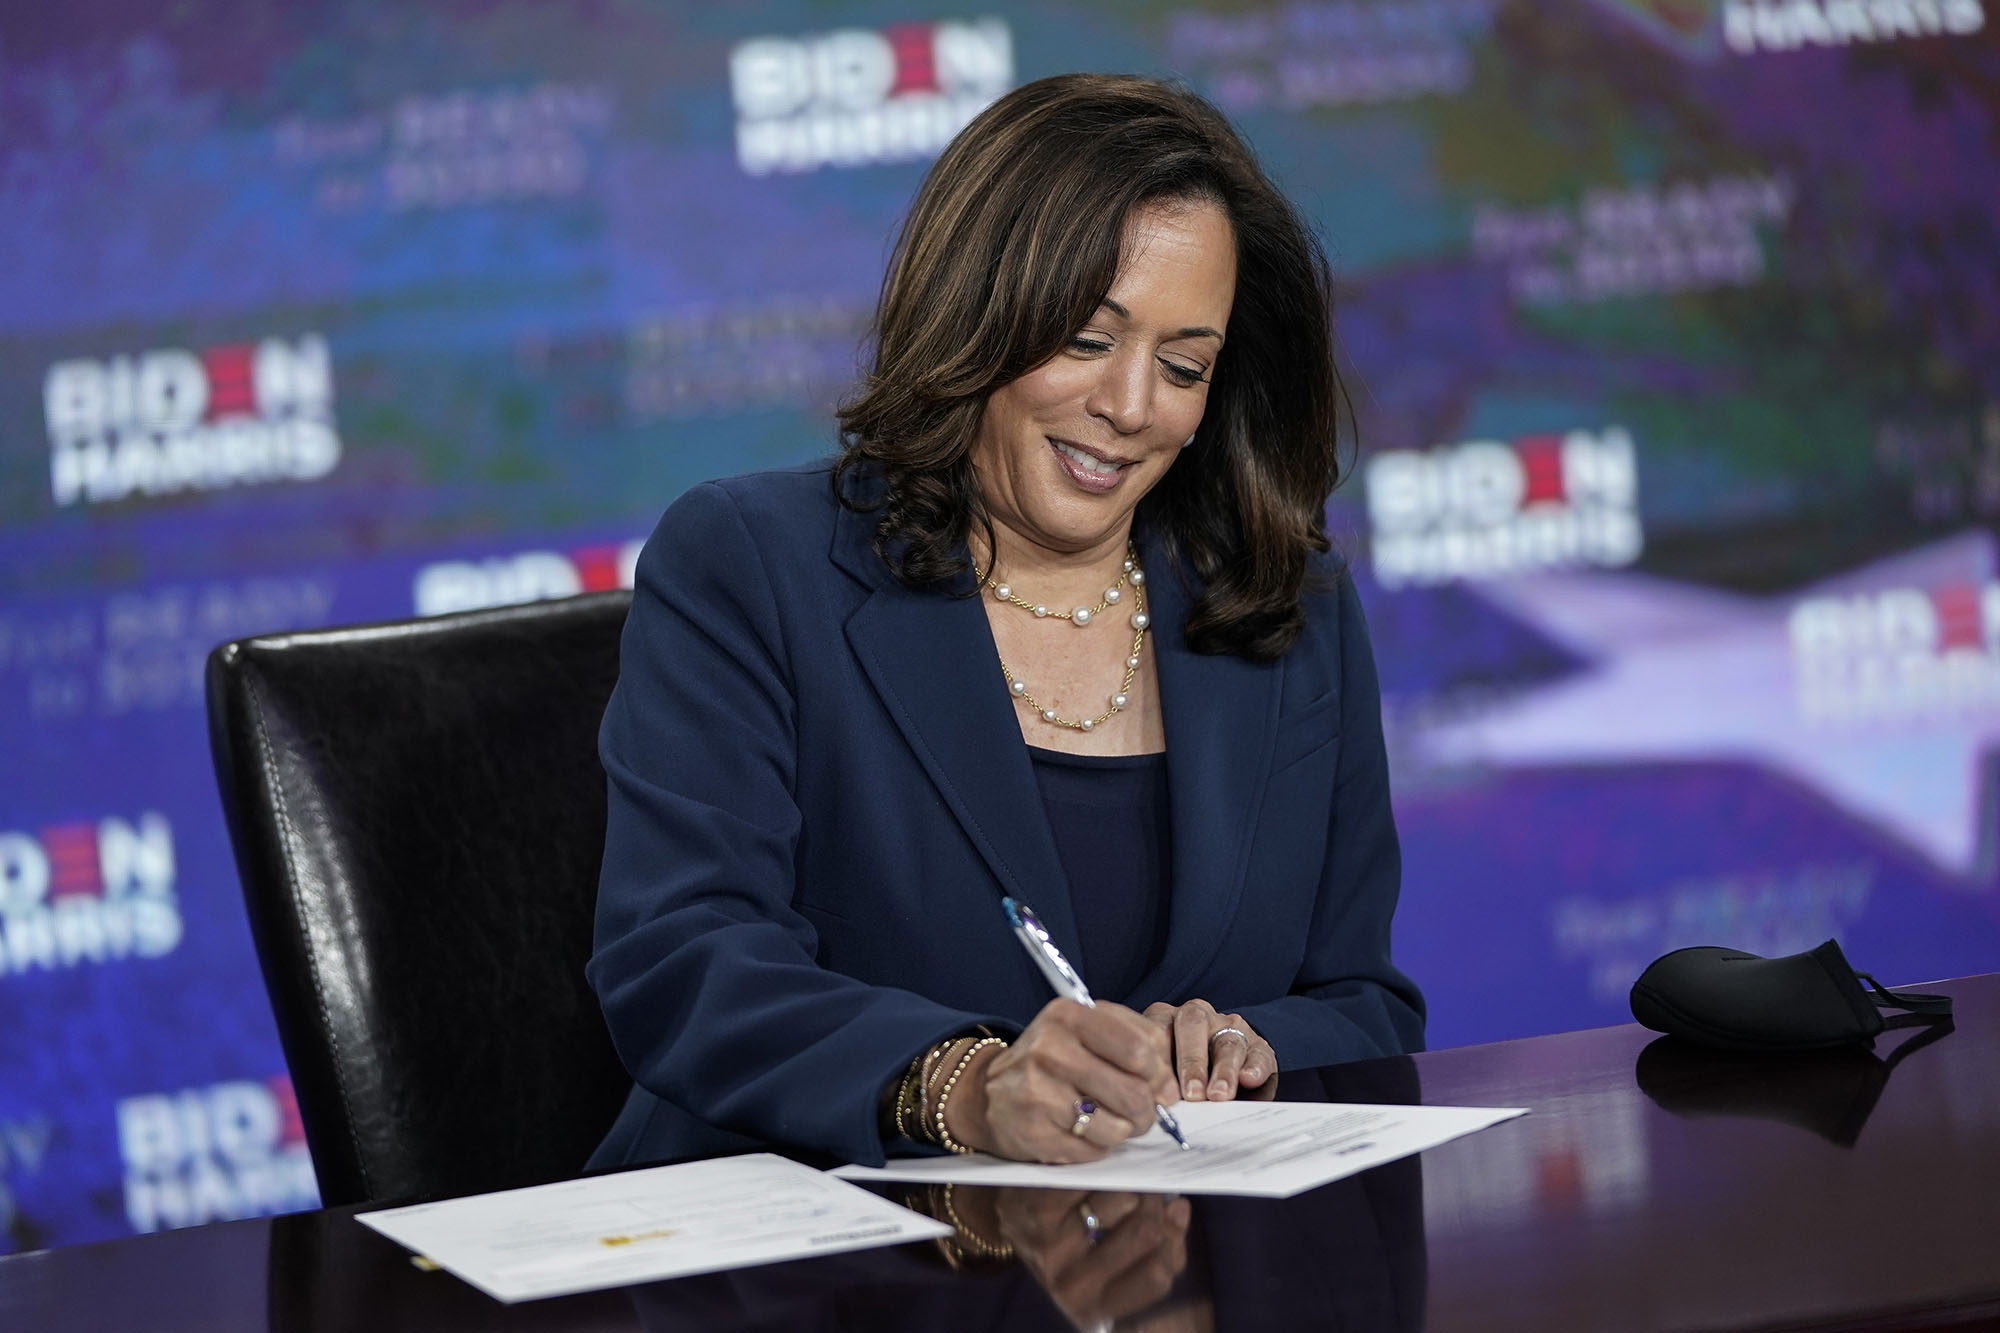 Presumptive Democratic vice presidential nominee, Sen. Kamala Harris signs required documents for receiving the Democratic nomination for Vice President of the United States at the Hotel DuPont on August 14 in Wilmington, Delaware.